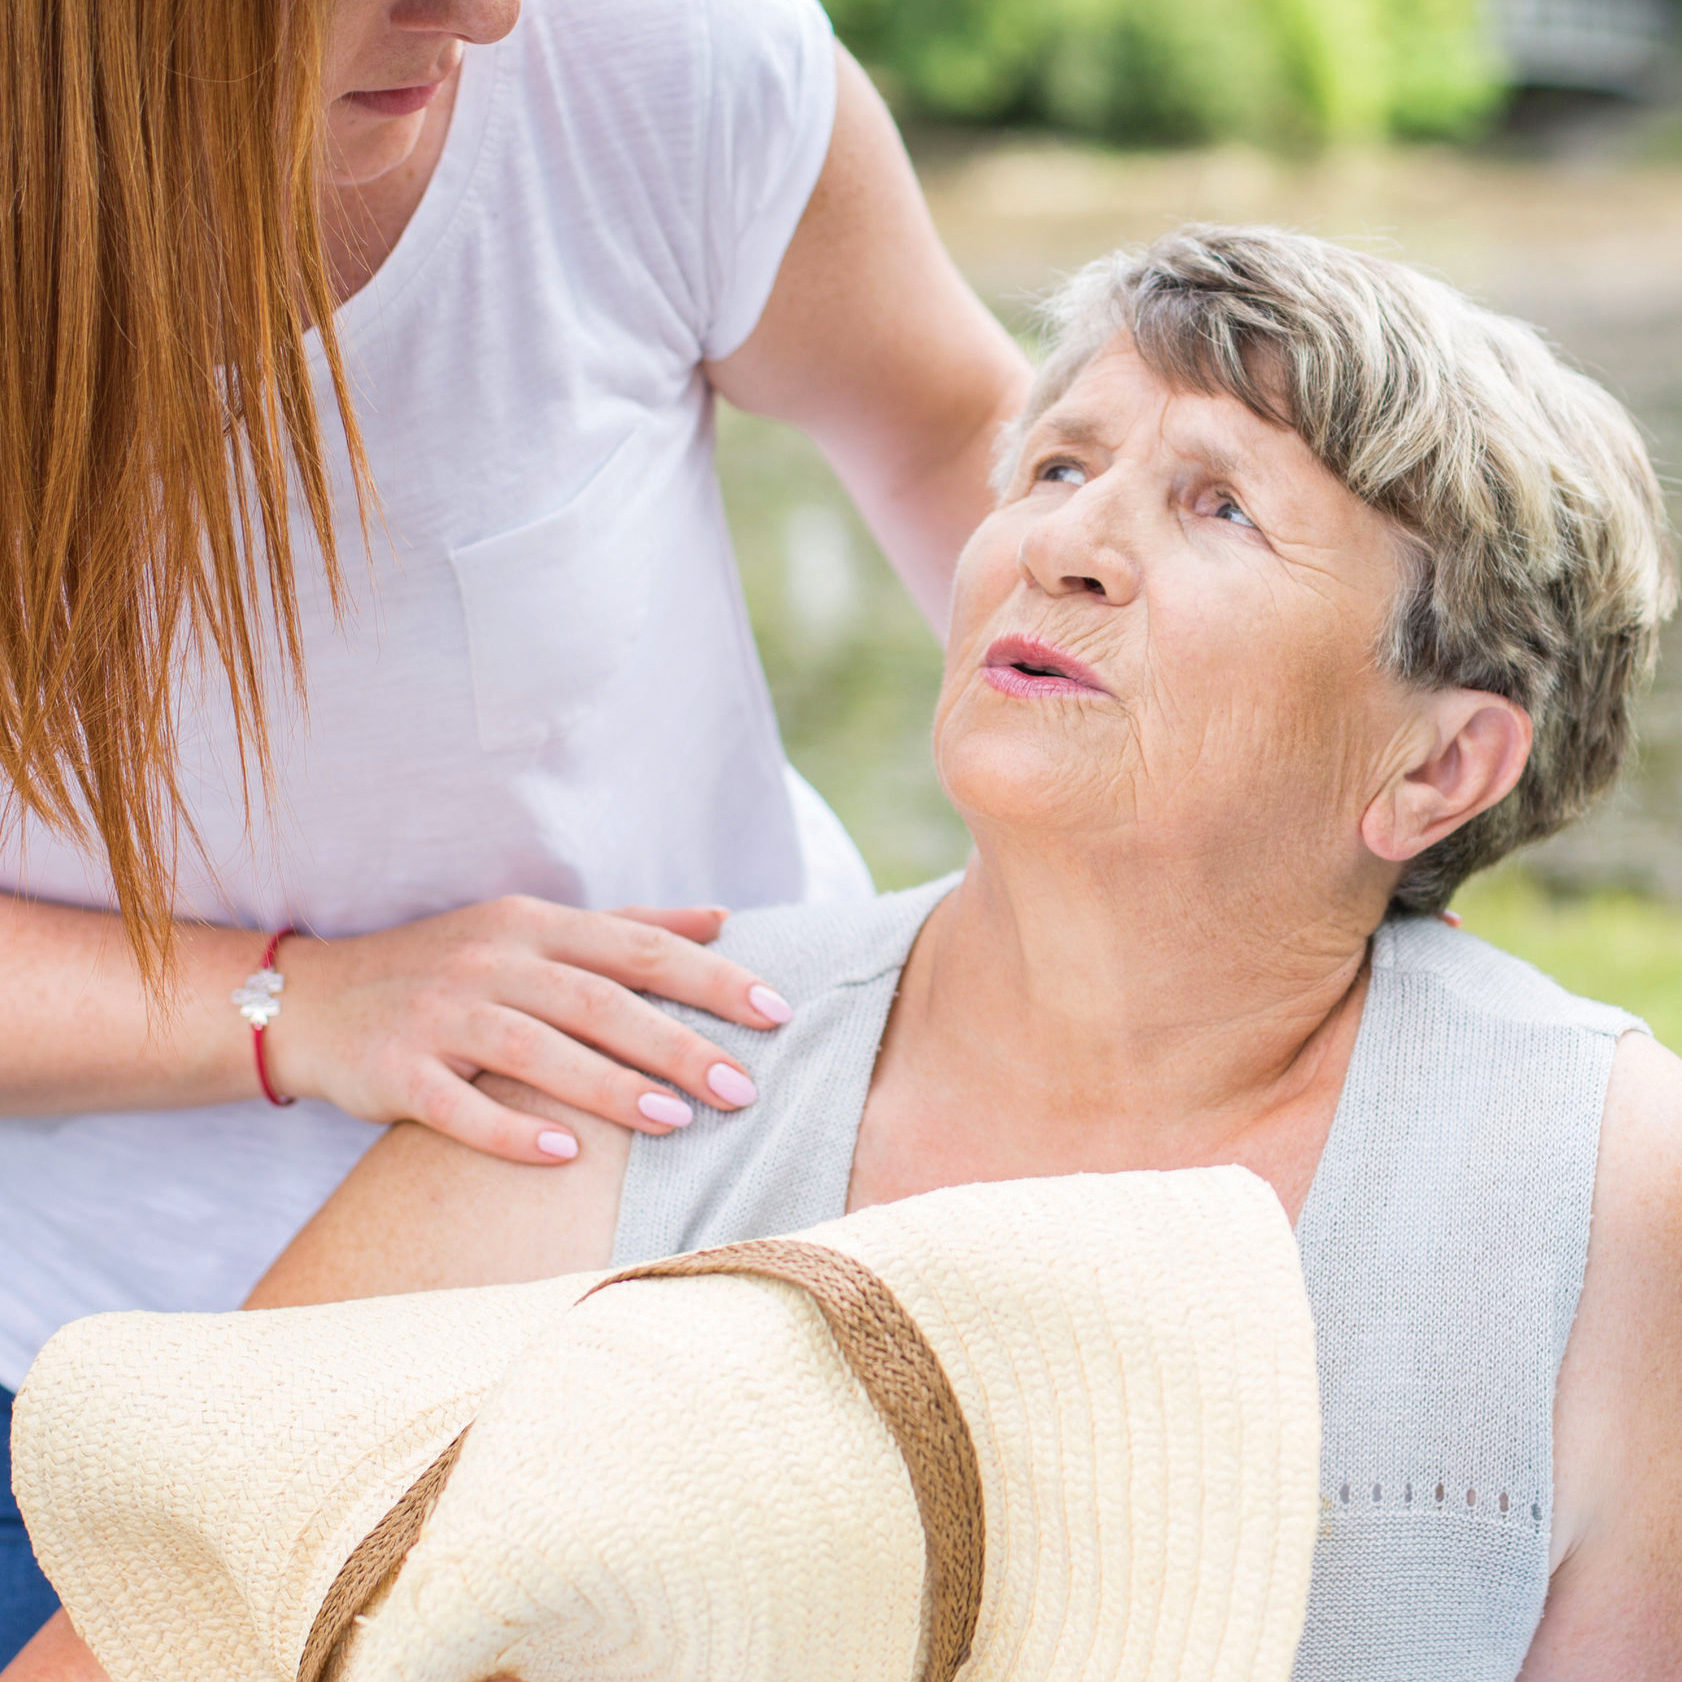 56279401 - shot of an elderly lady holding a sun hat, feeling faint, and a young woman assisting her